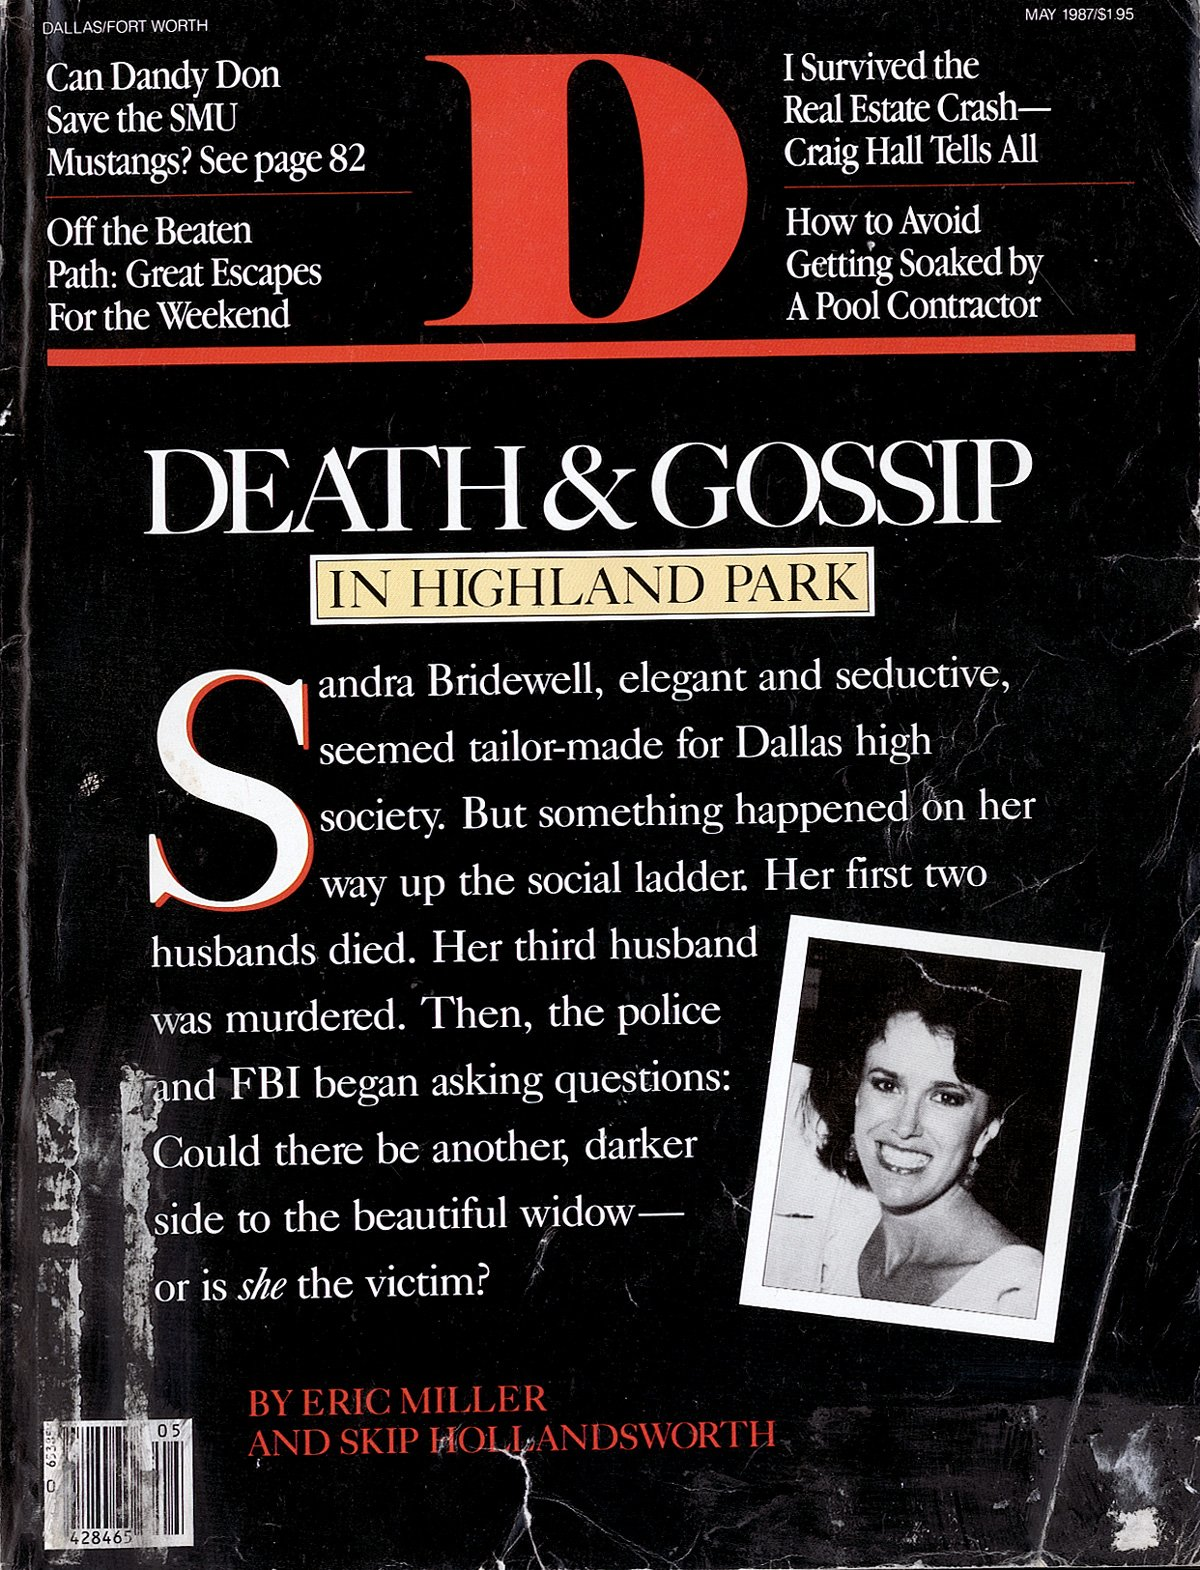 May 1987 cover